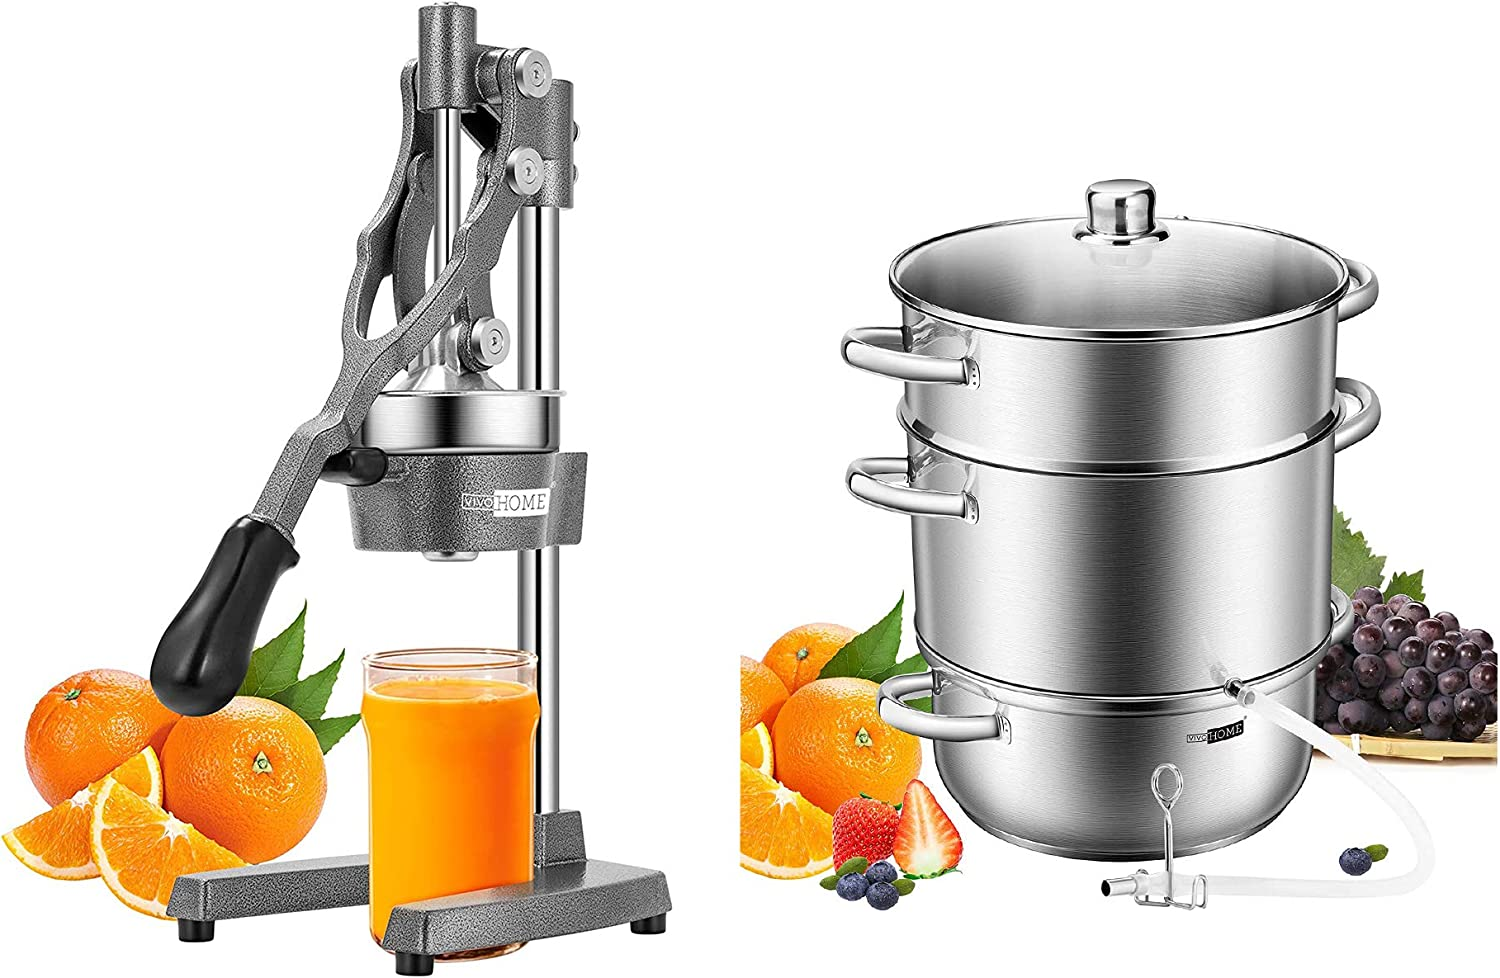 VIVOHOME Extra Tall Heavy Duty Commercial Manual Hand Press Citrus Orange Lemon Juicer Squeezer Machine Grey and 24cm 8.5Qt Stainless Steel Juice Steamer Extractor Fruit Vegetables Juicer Steamer Pot